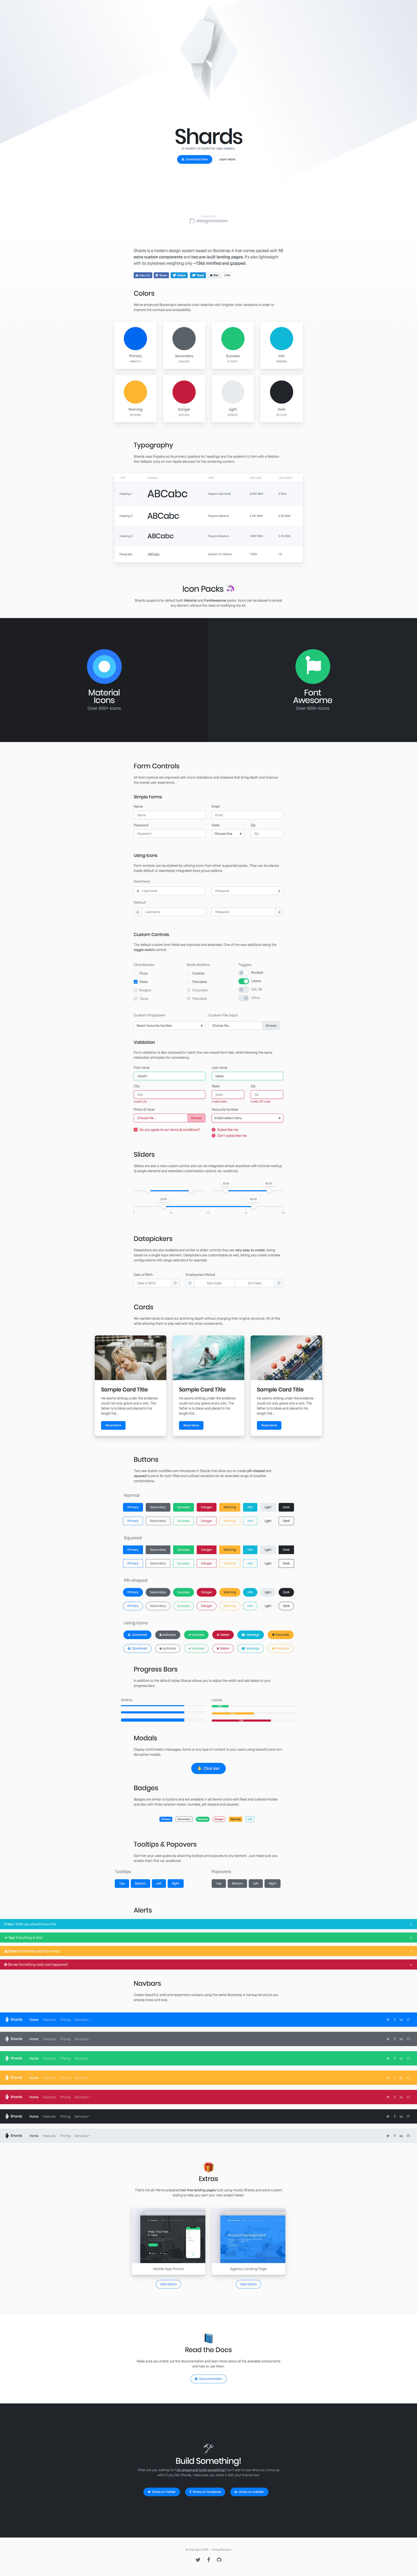 Shards HTML UI Kit is a beautiful and modern free Bootstrap 4 HTML UI Kit packed with 2 custom page templates and 11 extra custom components. Shards HTML UI Kit is uses the latest HTML5 and CSS3 web technologies, fully responsive and built with Bootstrap Responsive CSS Grid System.